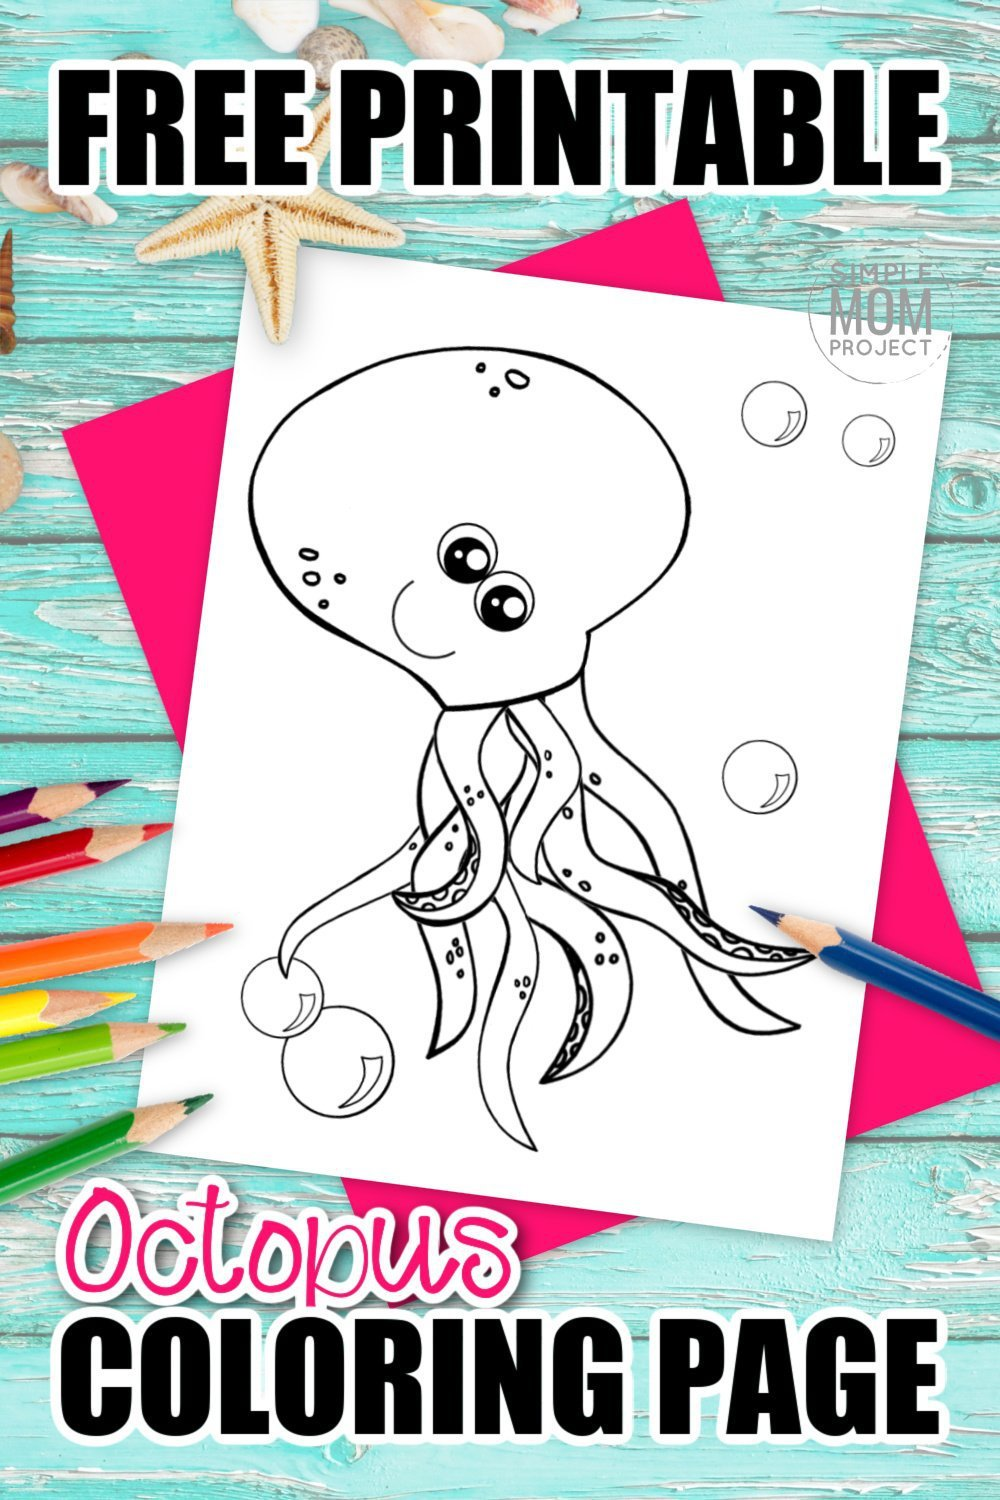 Are you and your preschool students learning about the letter O in the alphabet? Use this free printable cartoon octopus coloring page to help! Start by drawing the letter O next to this cute octopus and sound out the letter. You can even teach your kids how octopus are invertebrate by outlining the cartoon character! Click and print your octopus coloring page today! #octopuscoloring #oceananimalcoloring #SimpleMomProject